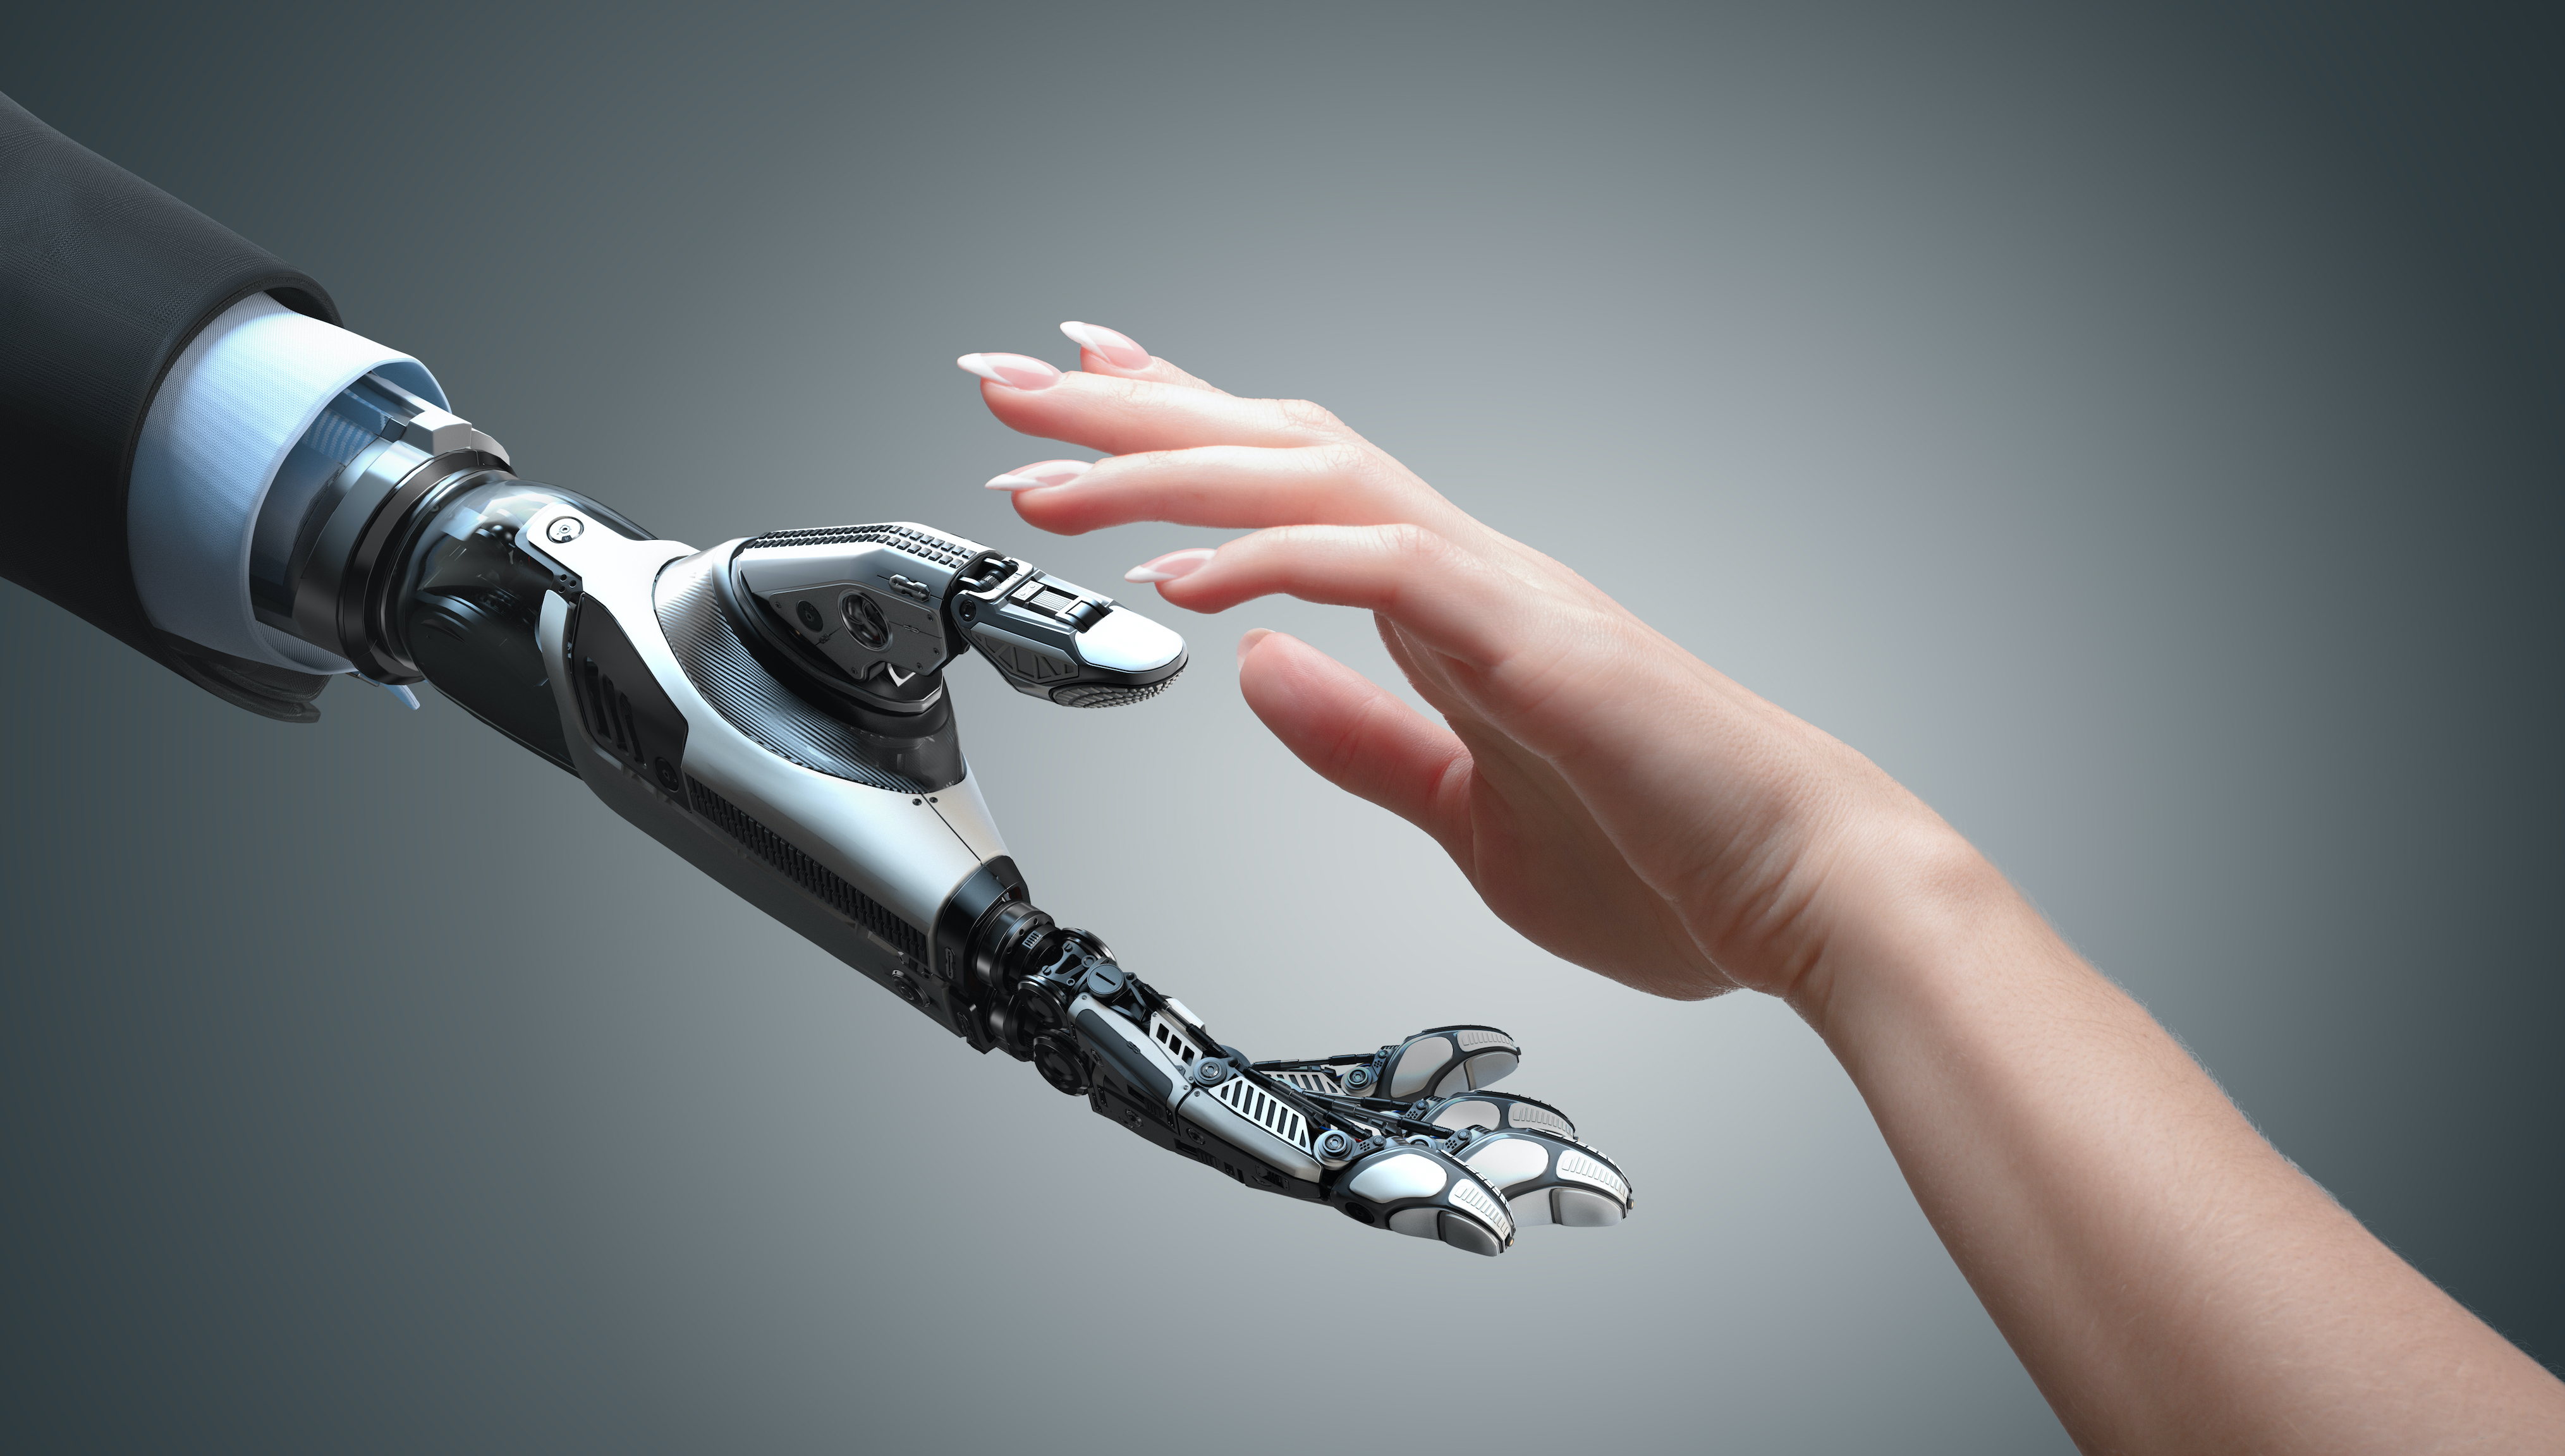 A robot arm wearing a suit reaching out to offer a helping hand to a human hand